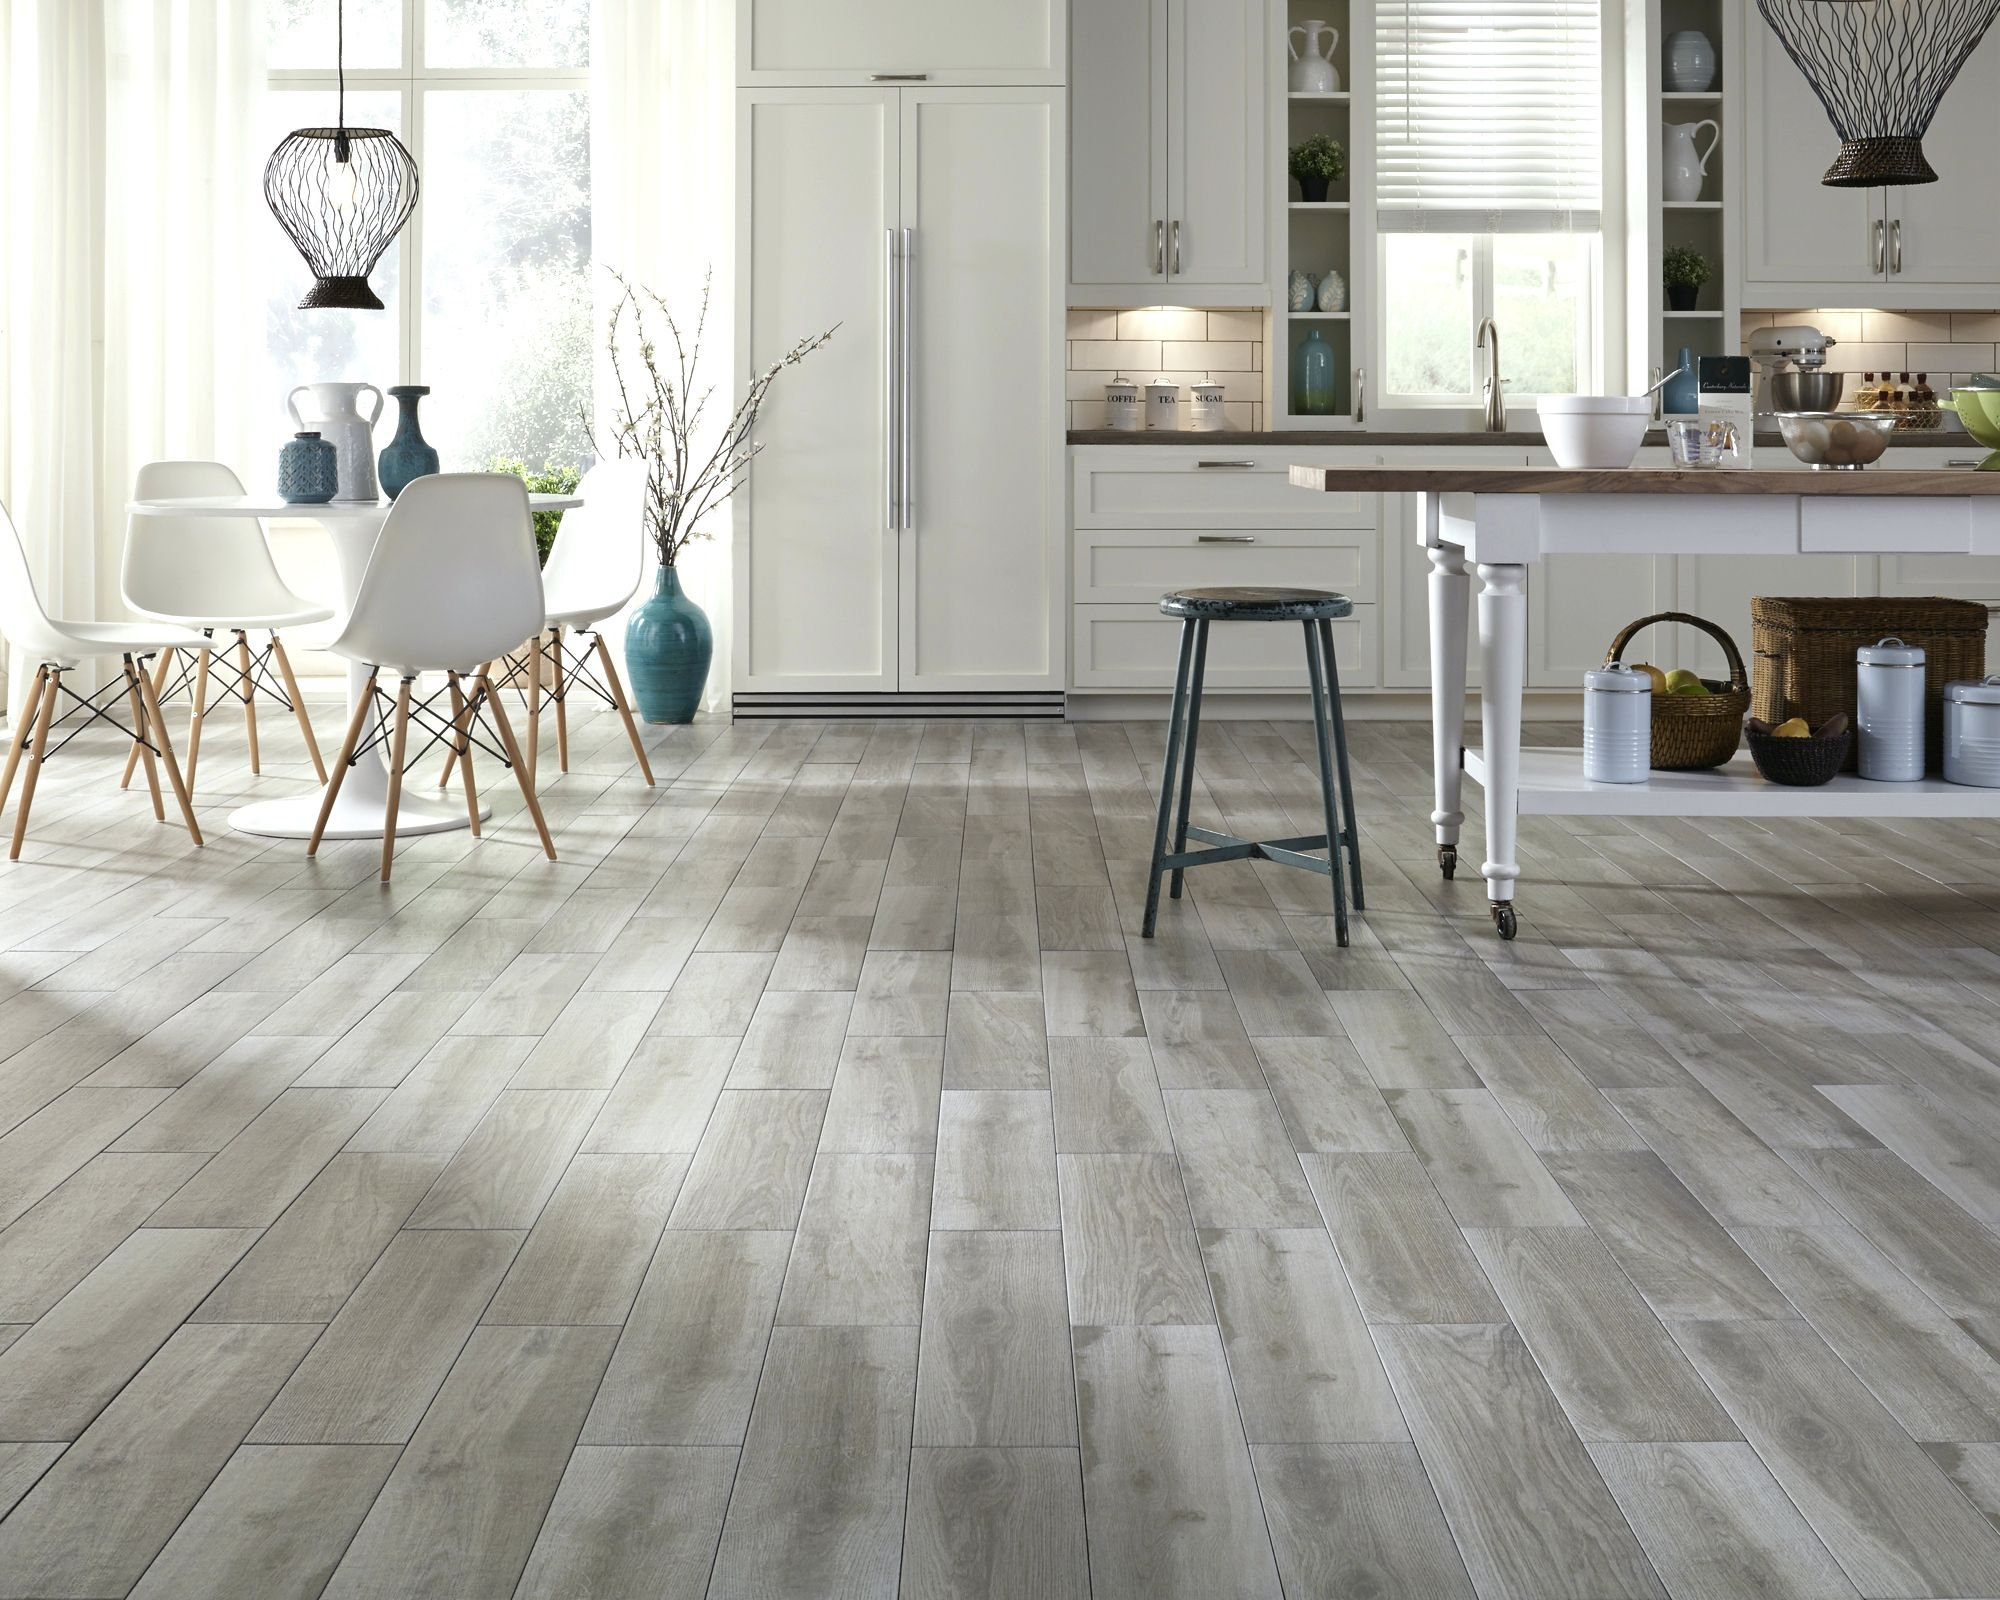 Tile That Looks Like Wood You Ll Love In 2021 Visualhunt